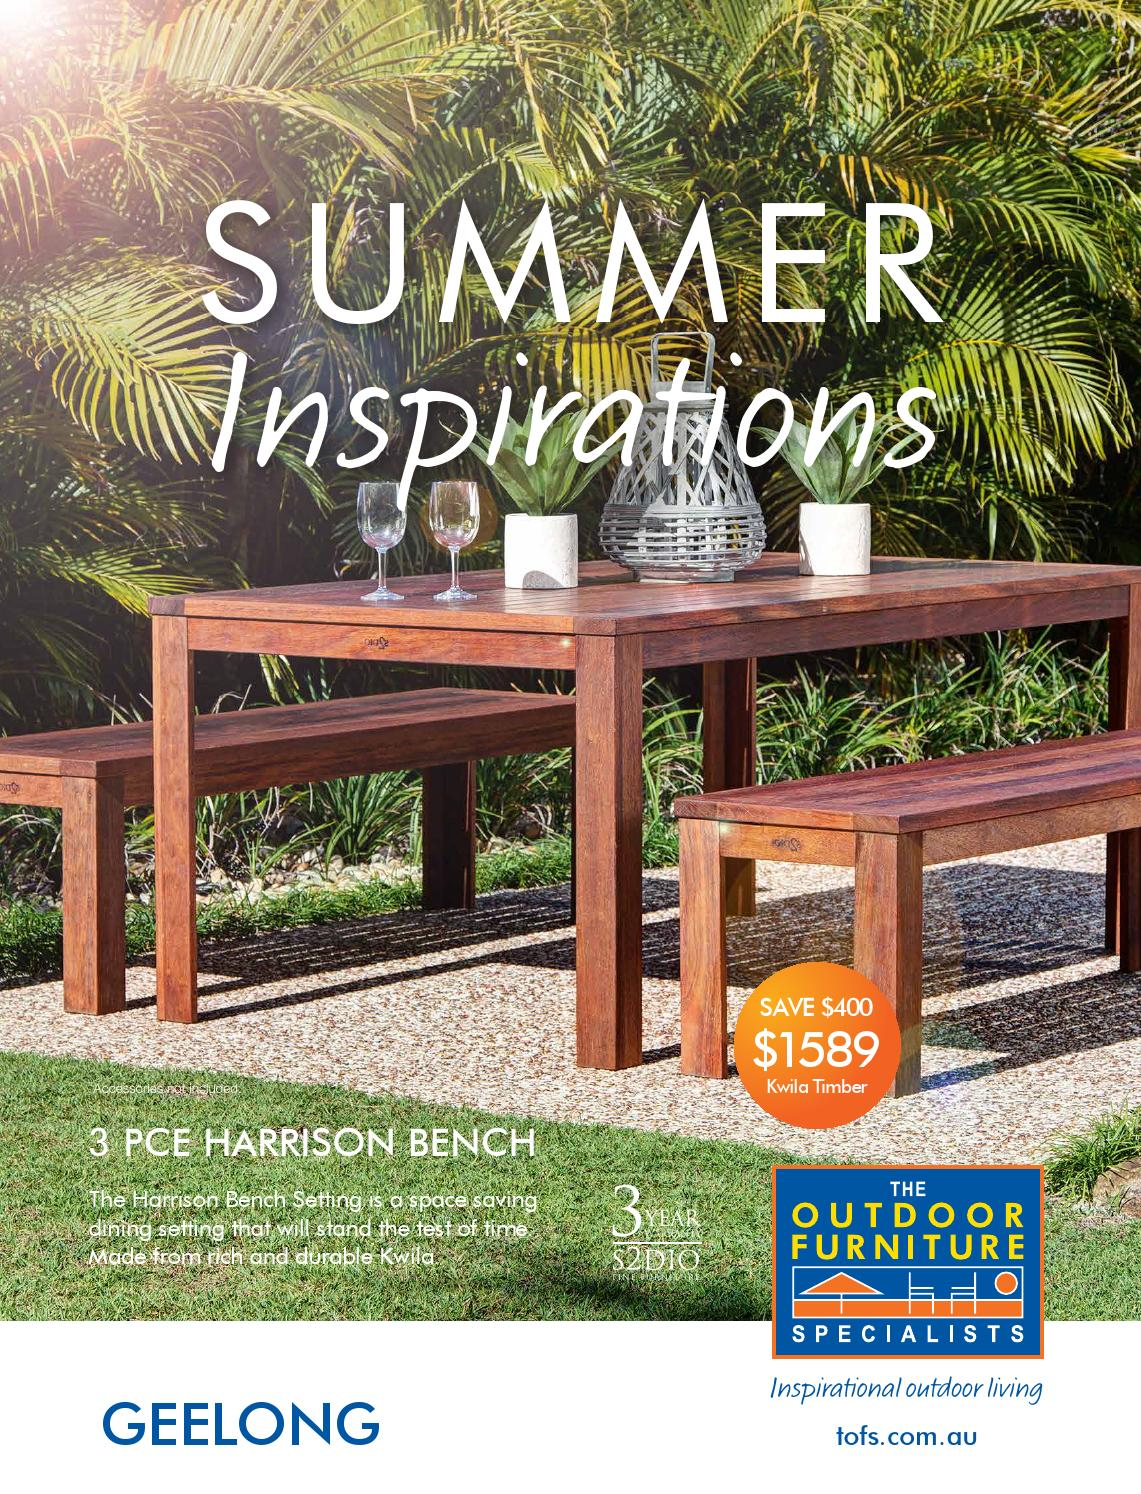 The outdoor furniture specialists geelong summer inspirations catalogue